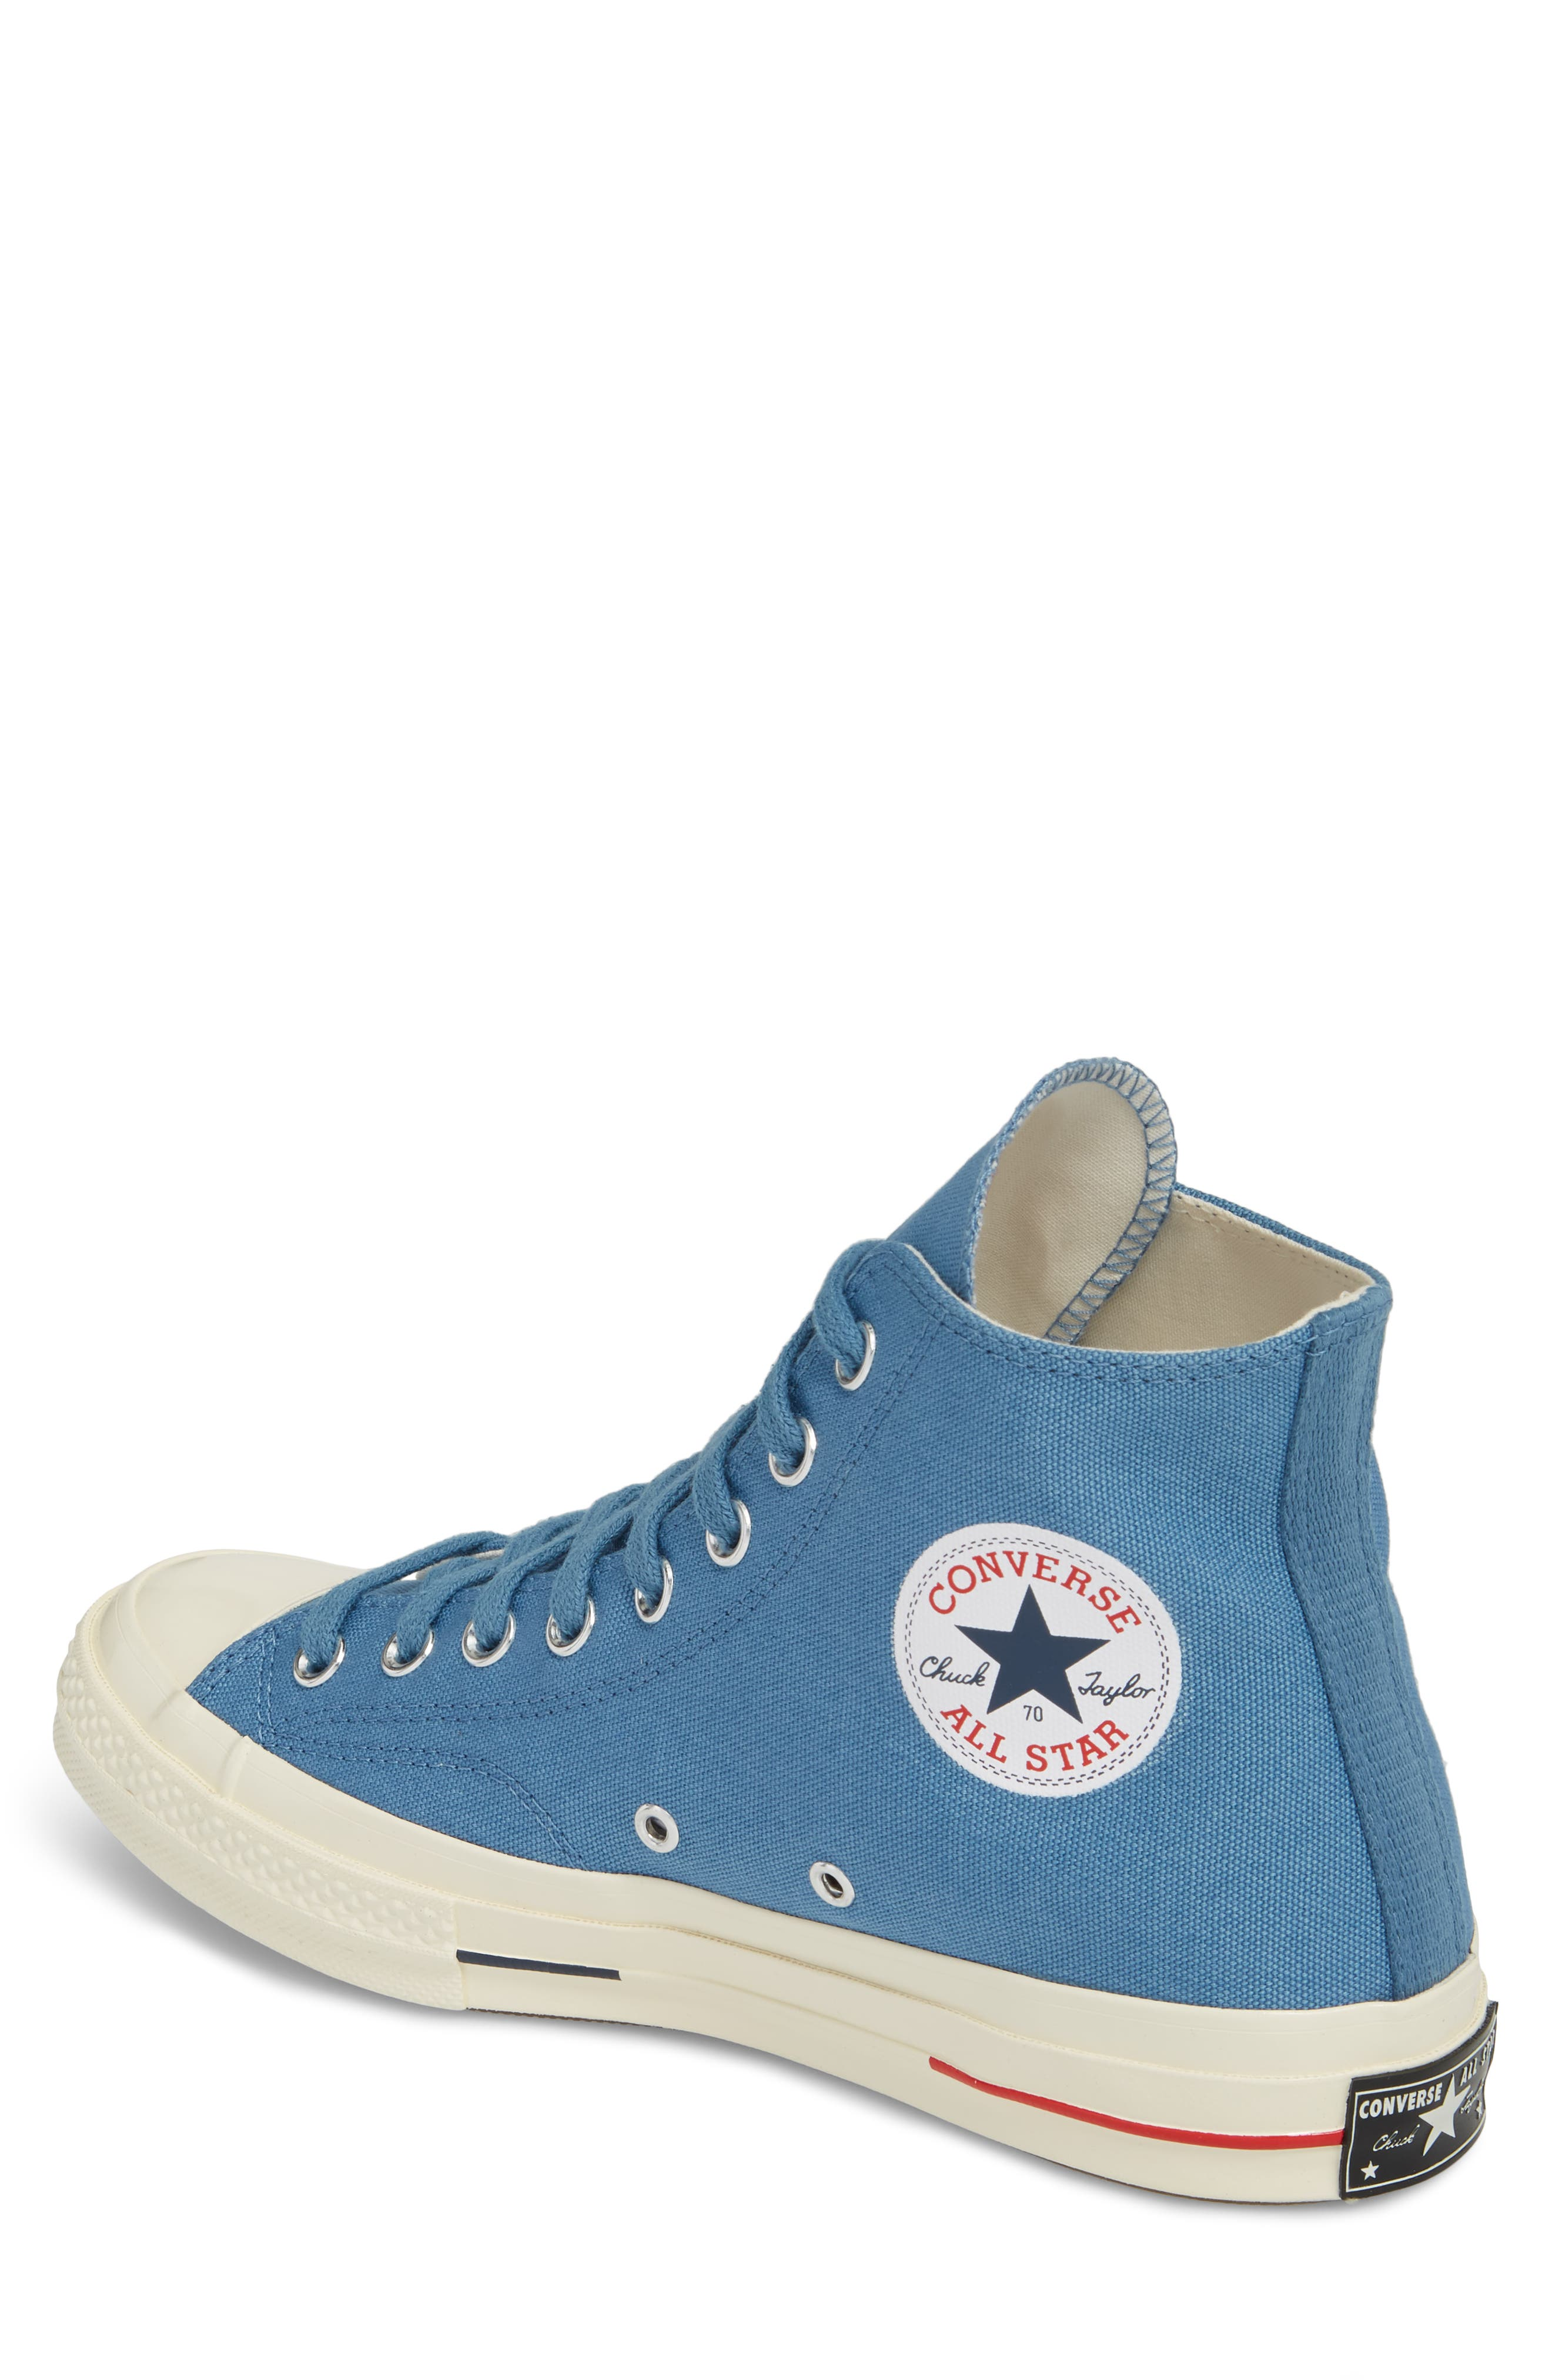 Chuck Taylor<sup>®</sup> All Star<sup>®</sup> '70s Heritage High Top Sneaker,                             Alternate thumbnail 2, color,                             400